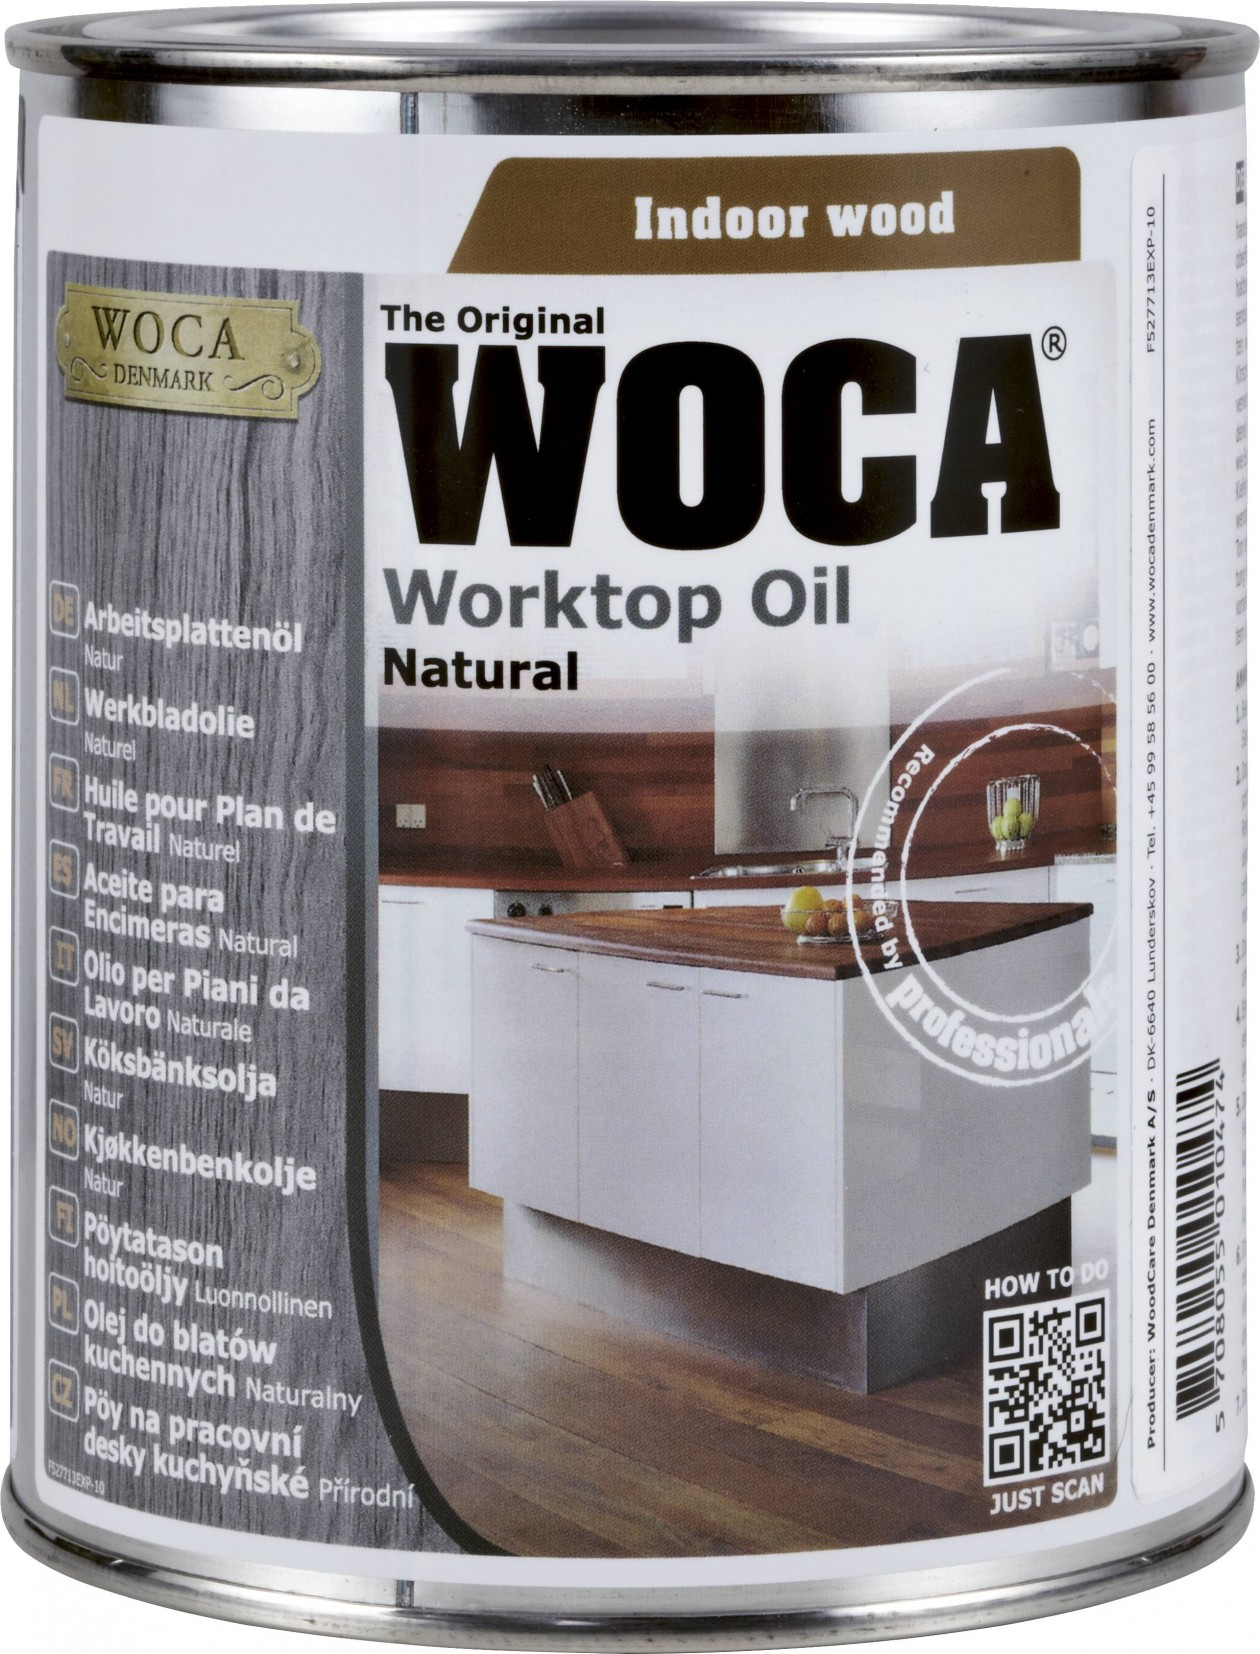 w3_Worktop Oil natural 0_75L 527713AA.jpeg